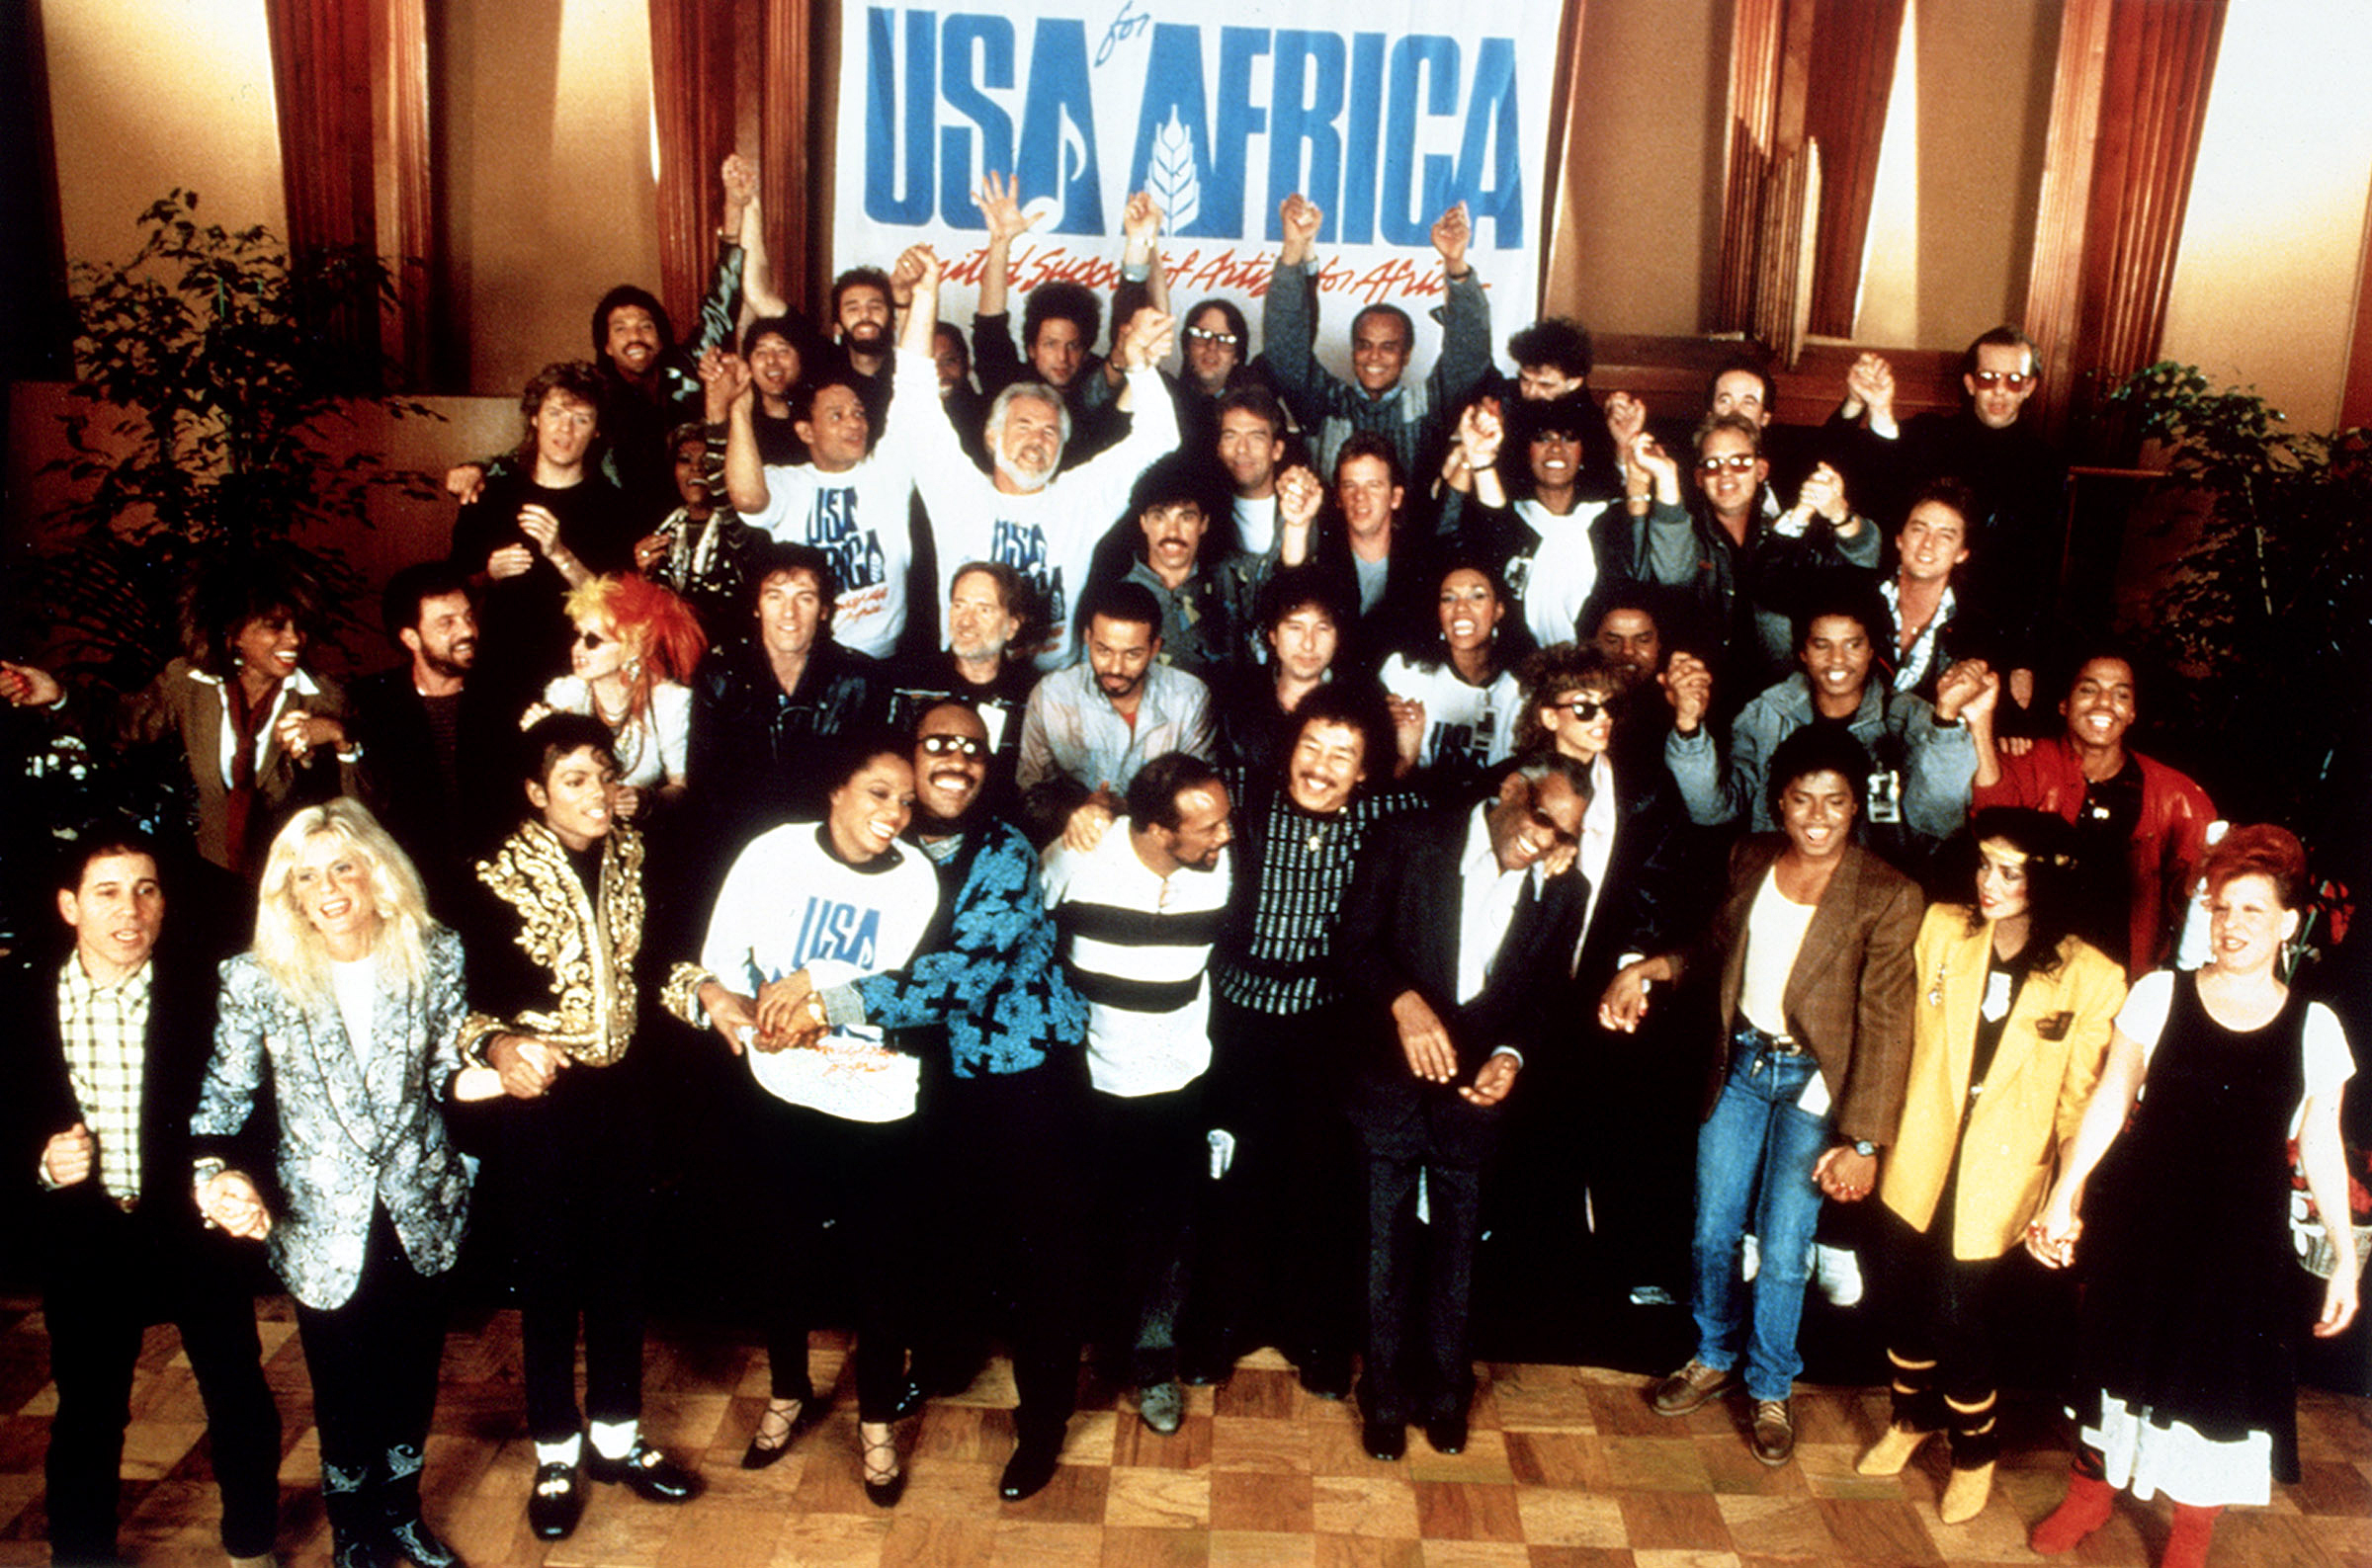 USA for Africaの誕生から「We Are the World」のヒットまで